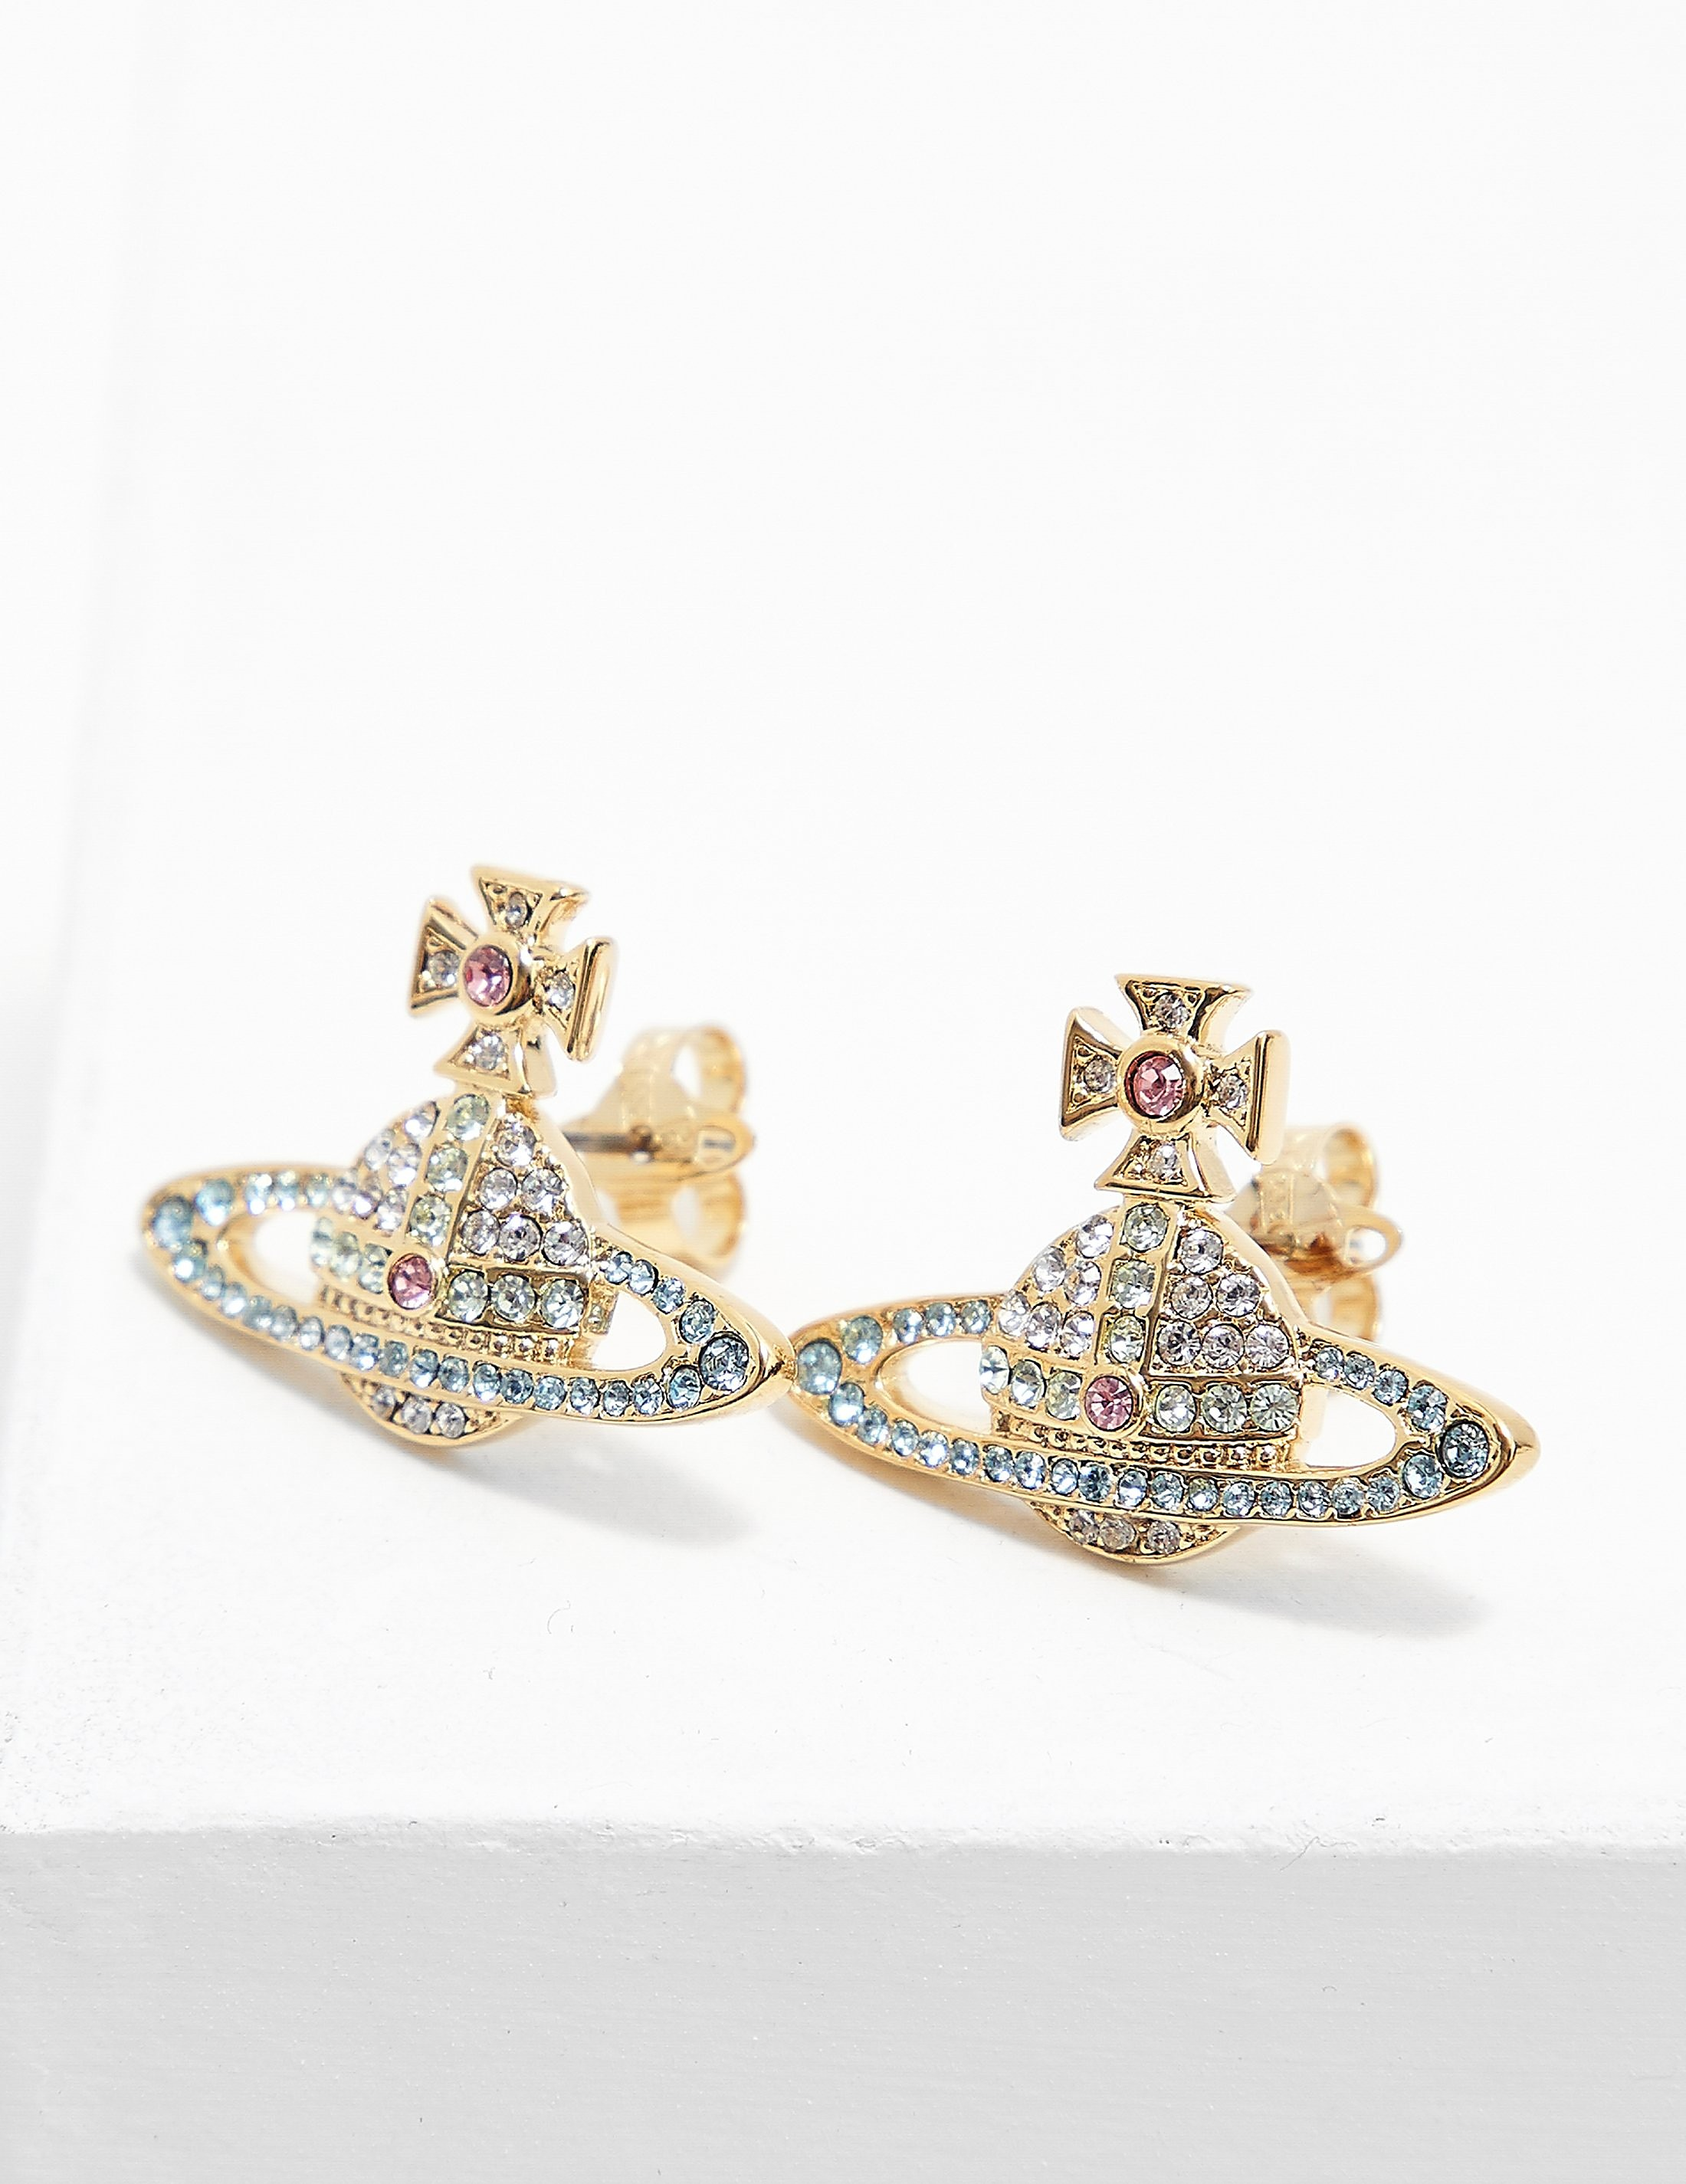 Vivienne Westwood Kika Earrings